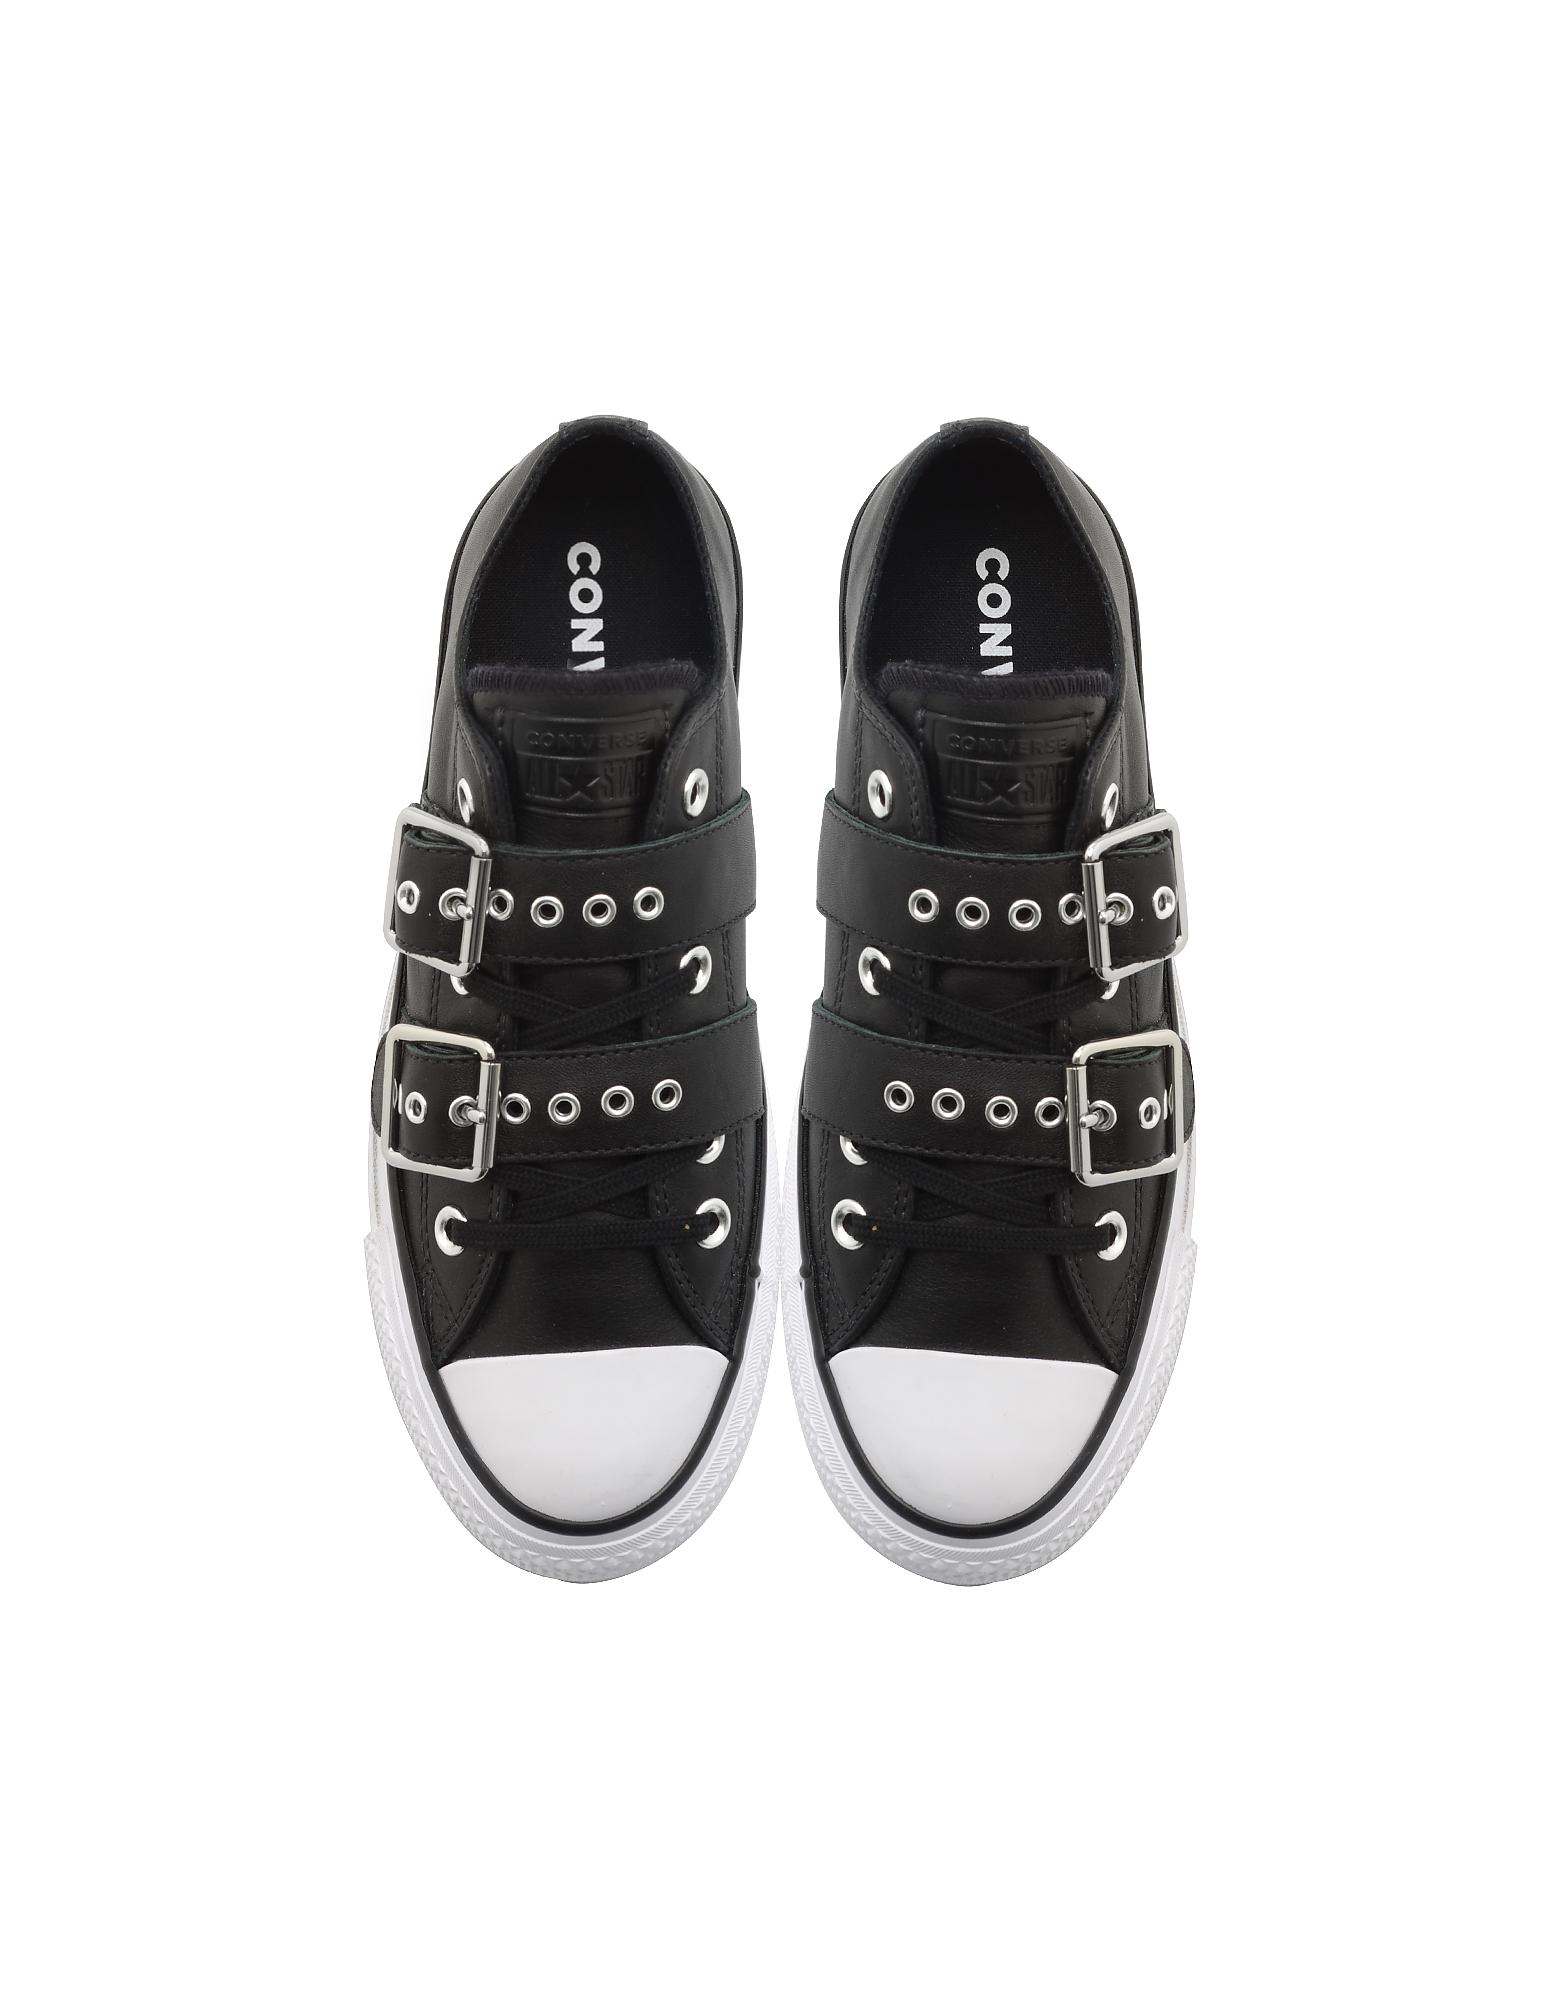 88d6f86cd77 Converse Chuck Taylor All Star Lift Buckle Black Platform Sneakers ...